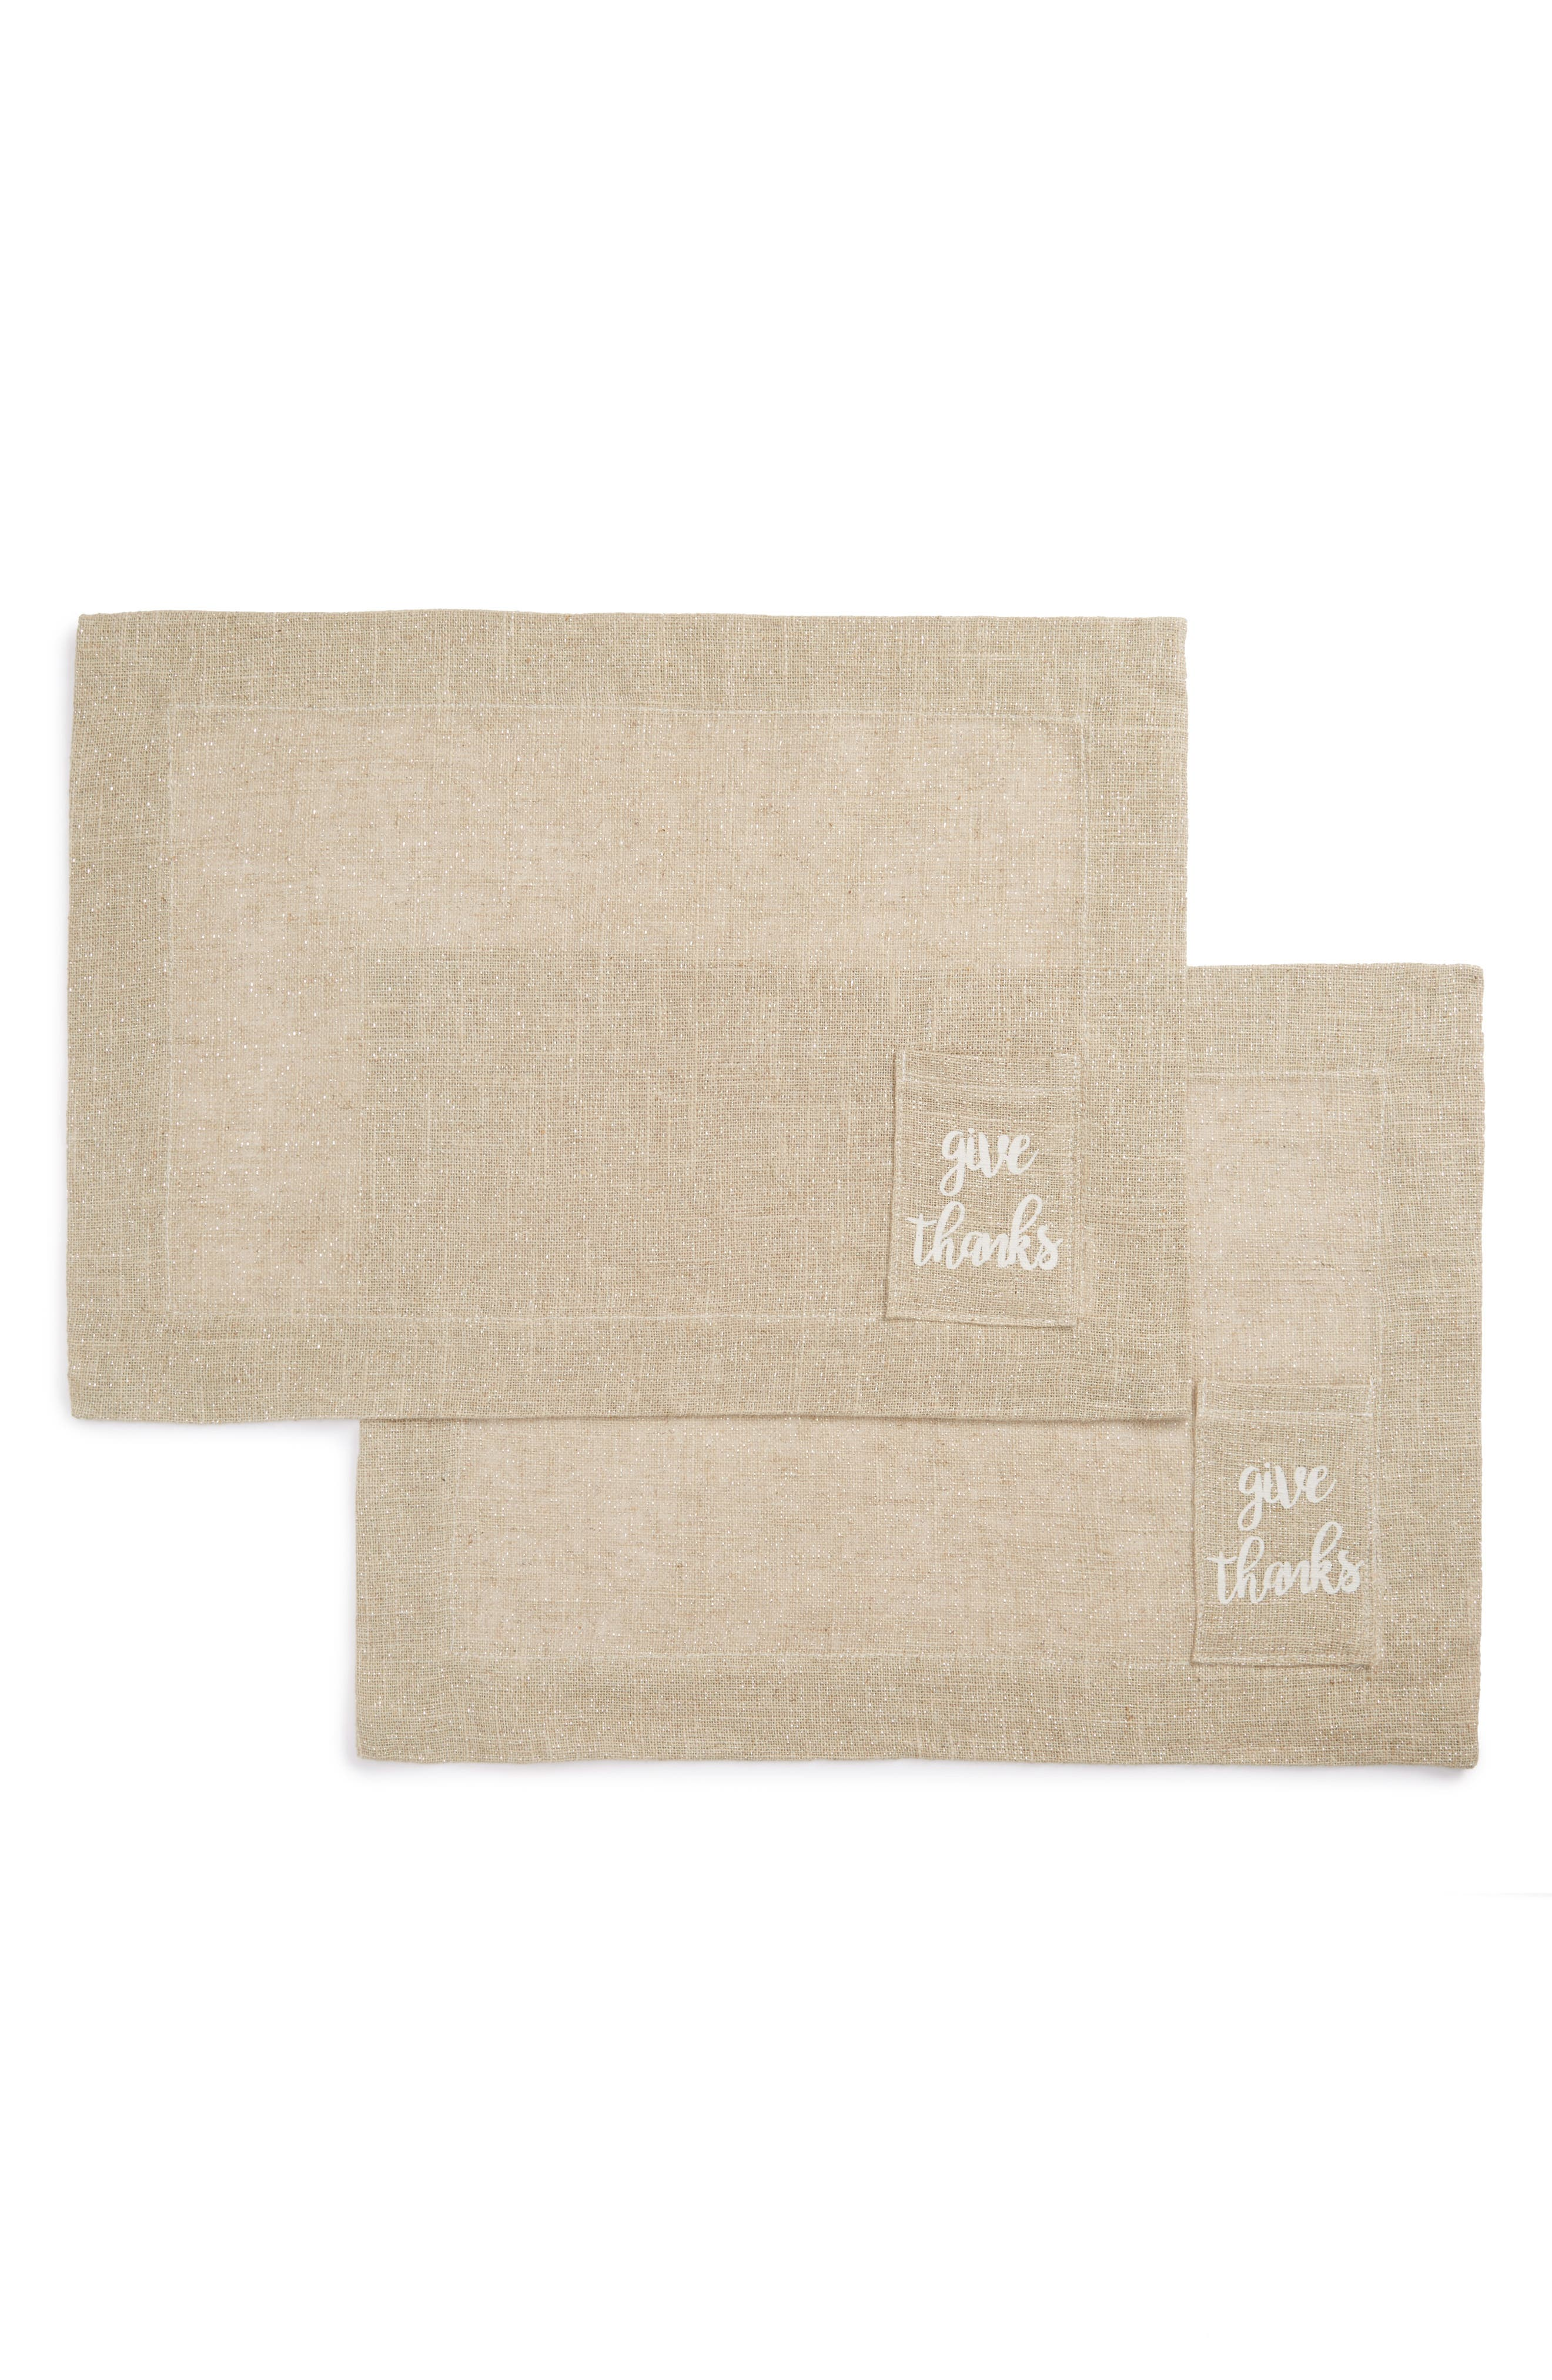 Give Thanks Set of 2 Placemats,                         Main,                         color, 250